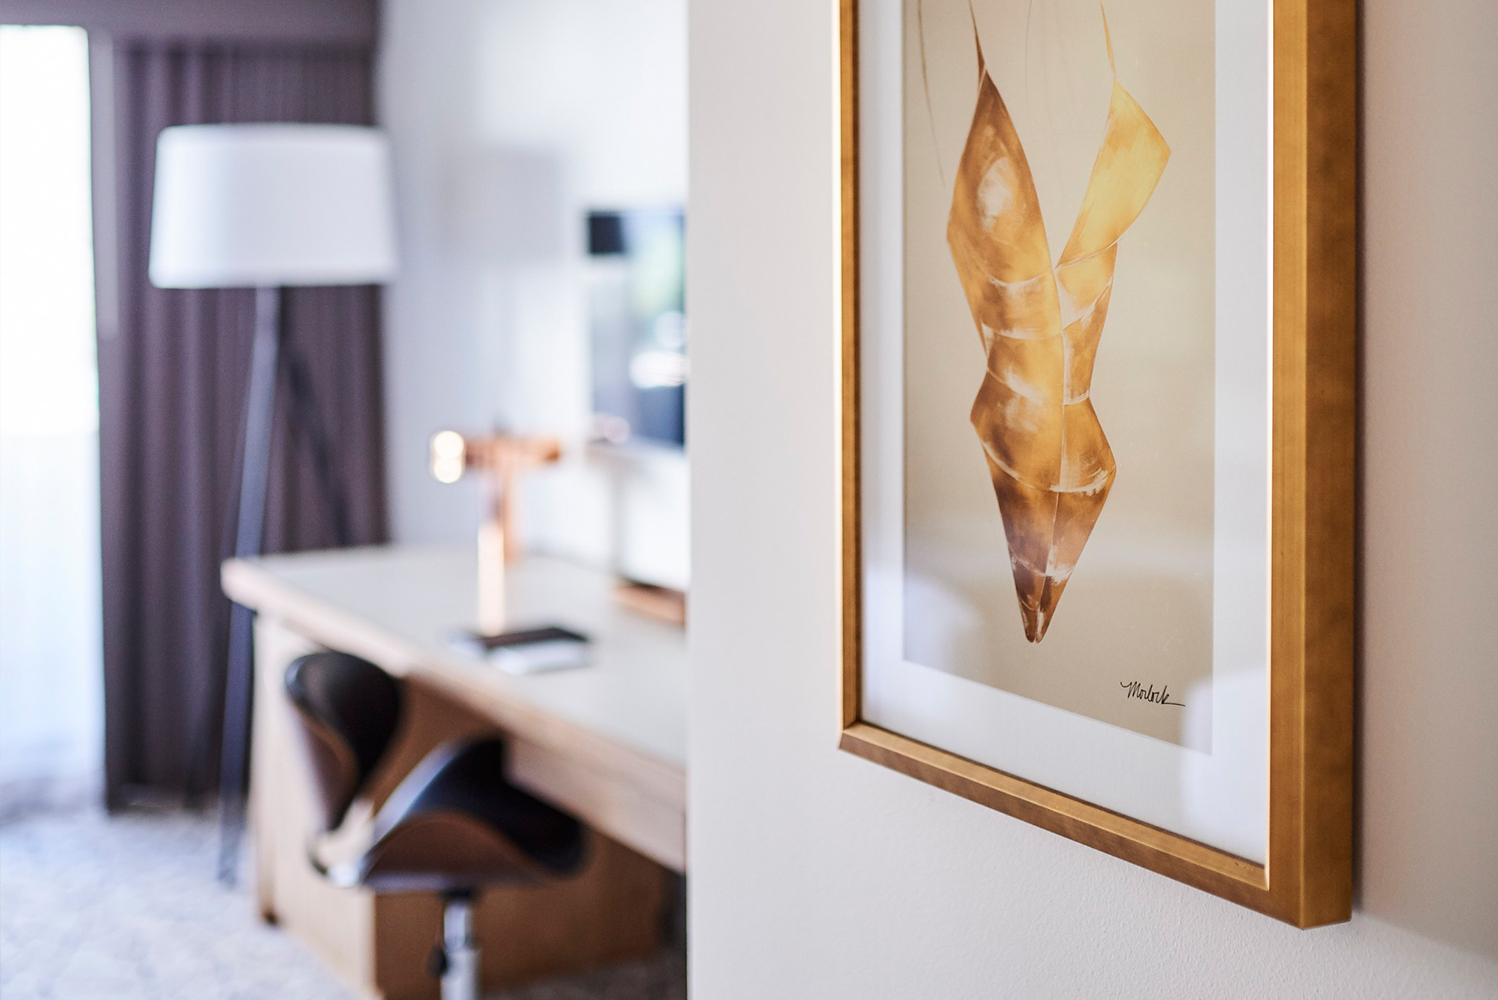 In a nod to its history, the interior design was inspired by the Playboy connection with references found through guestroom artwork.